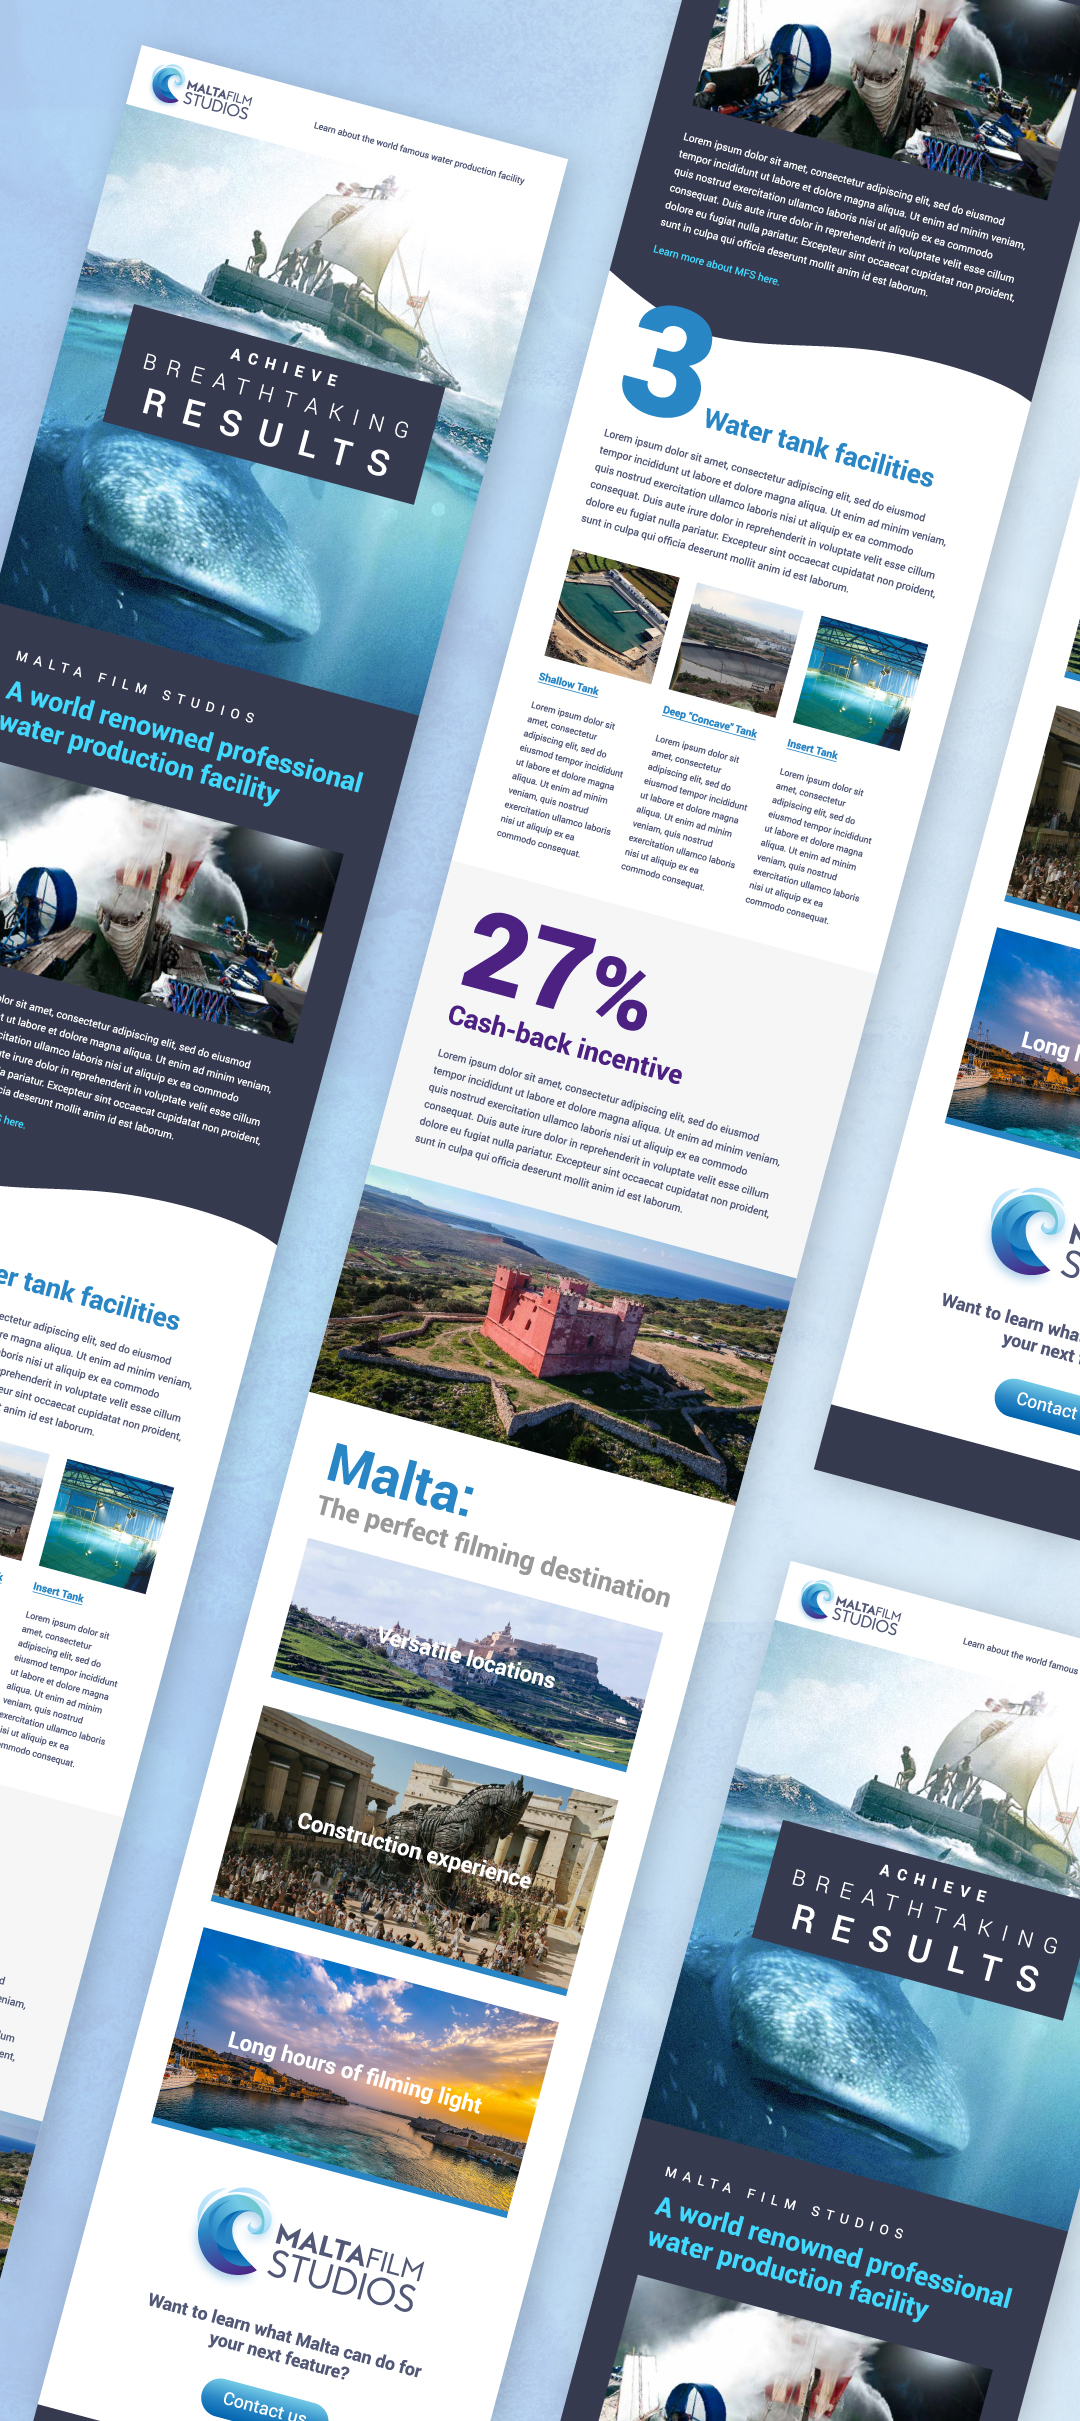 Malta Film Studio e-mail newsletter